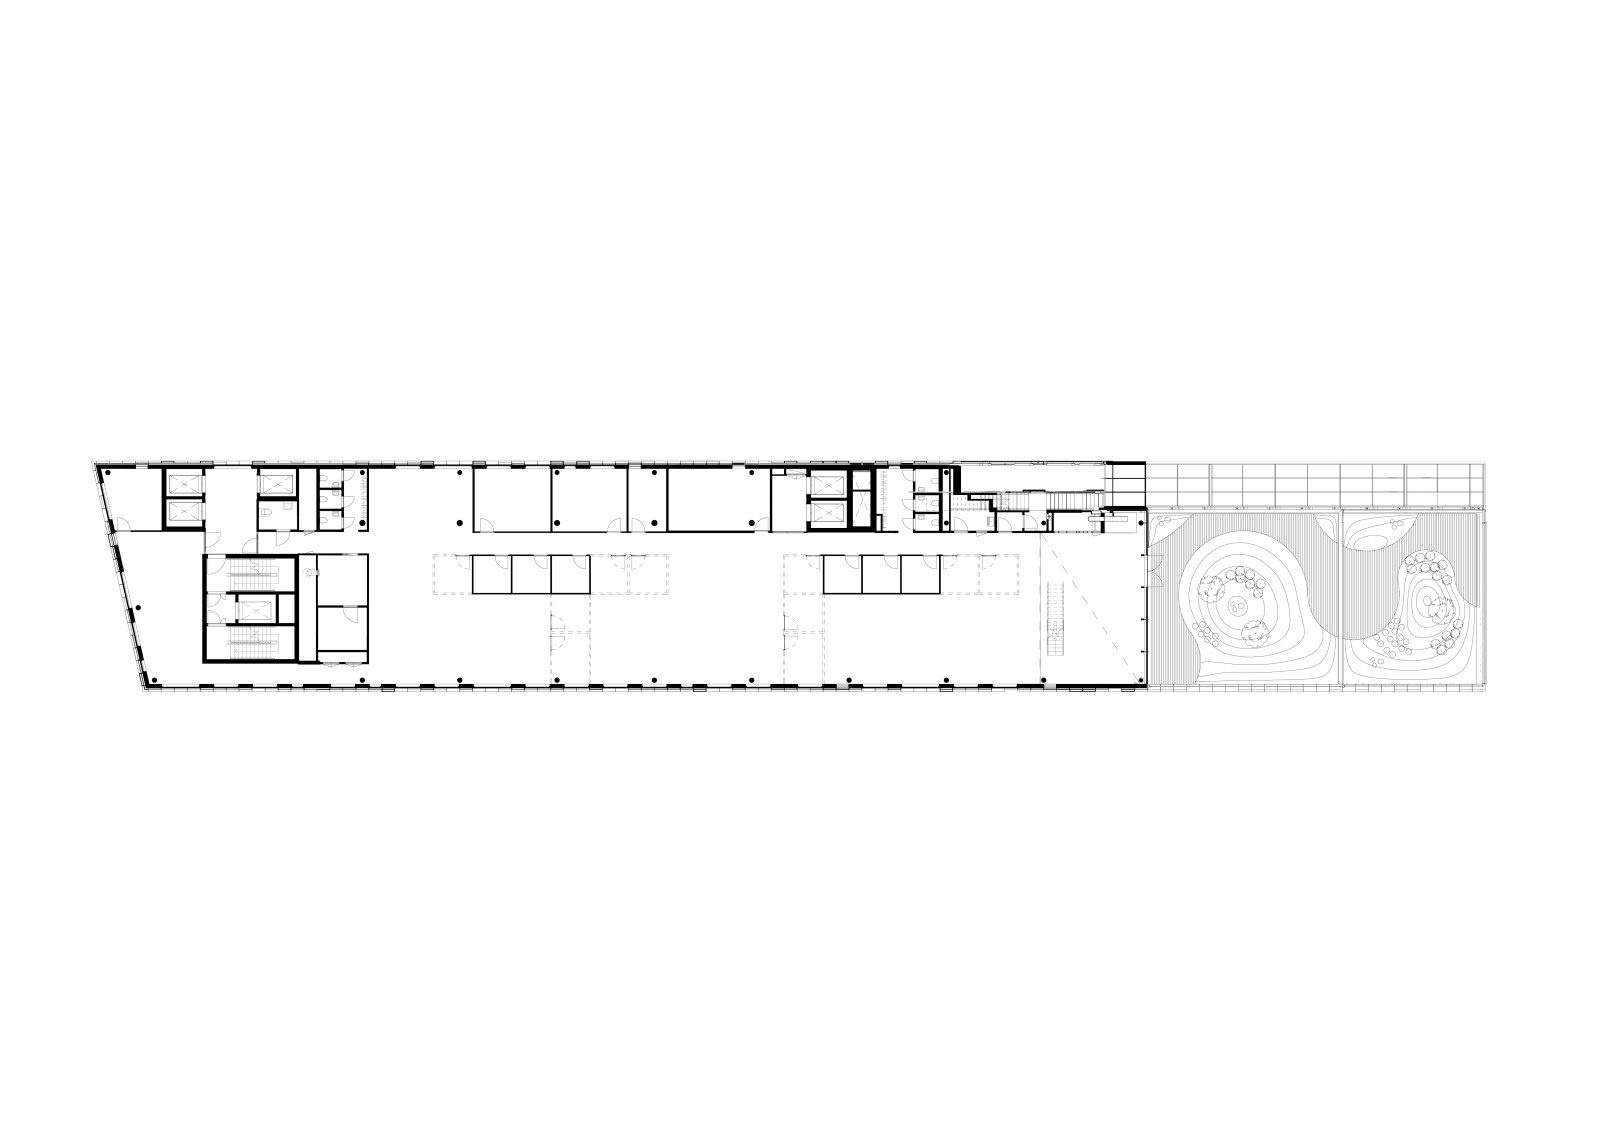 Floor plan, 5th floor